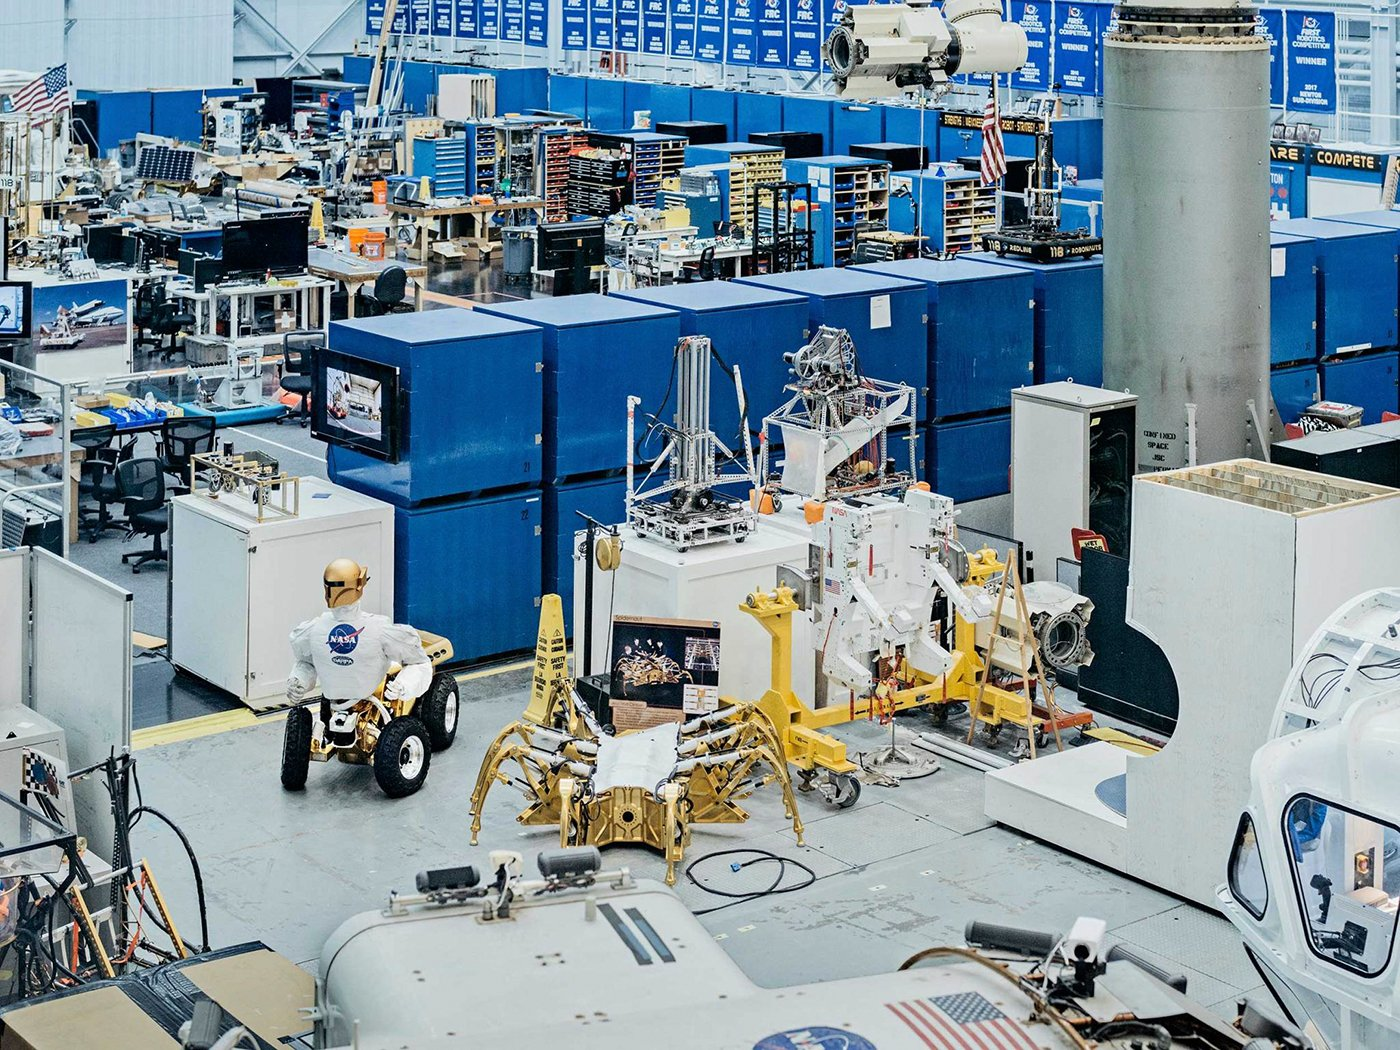 Inside view of the NASA HQ where astronauts are prepared for space travel. Photo by Mattia Balsamini.